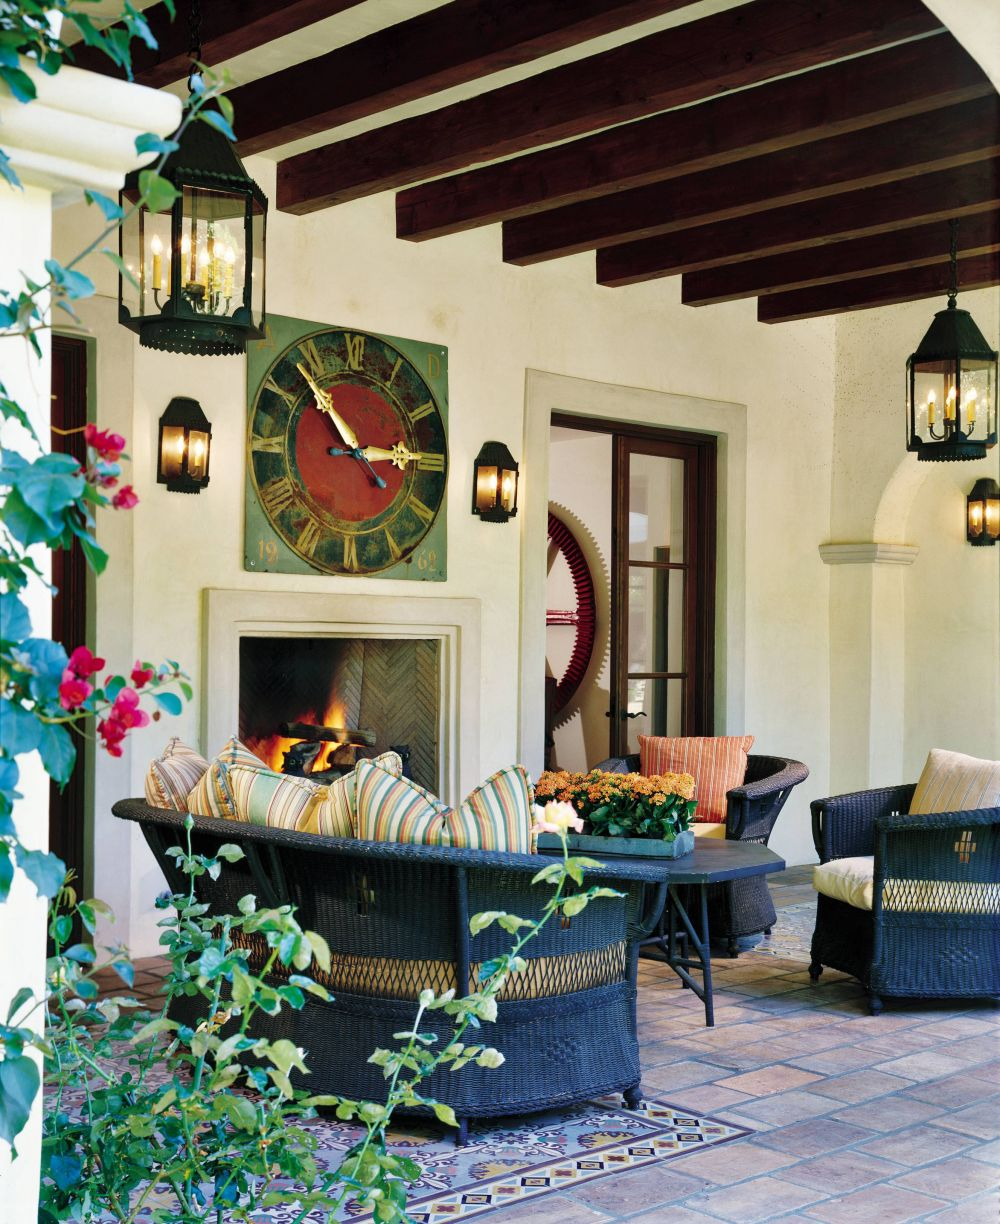 Garden Decor Los Angeles: Rustic Outdoor Space By Karin Blake By Architectural